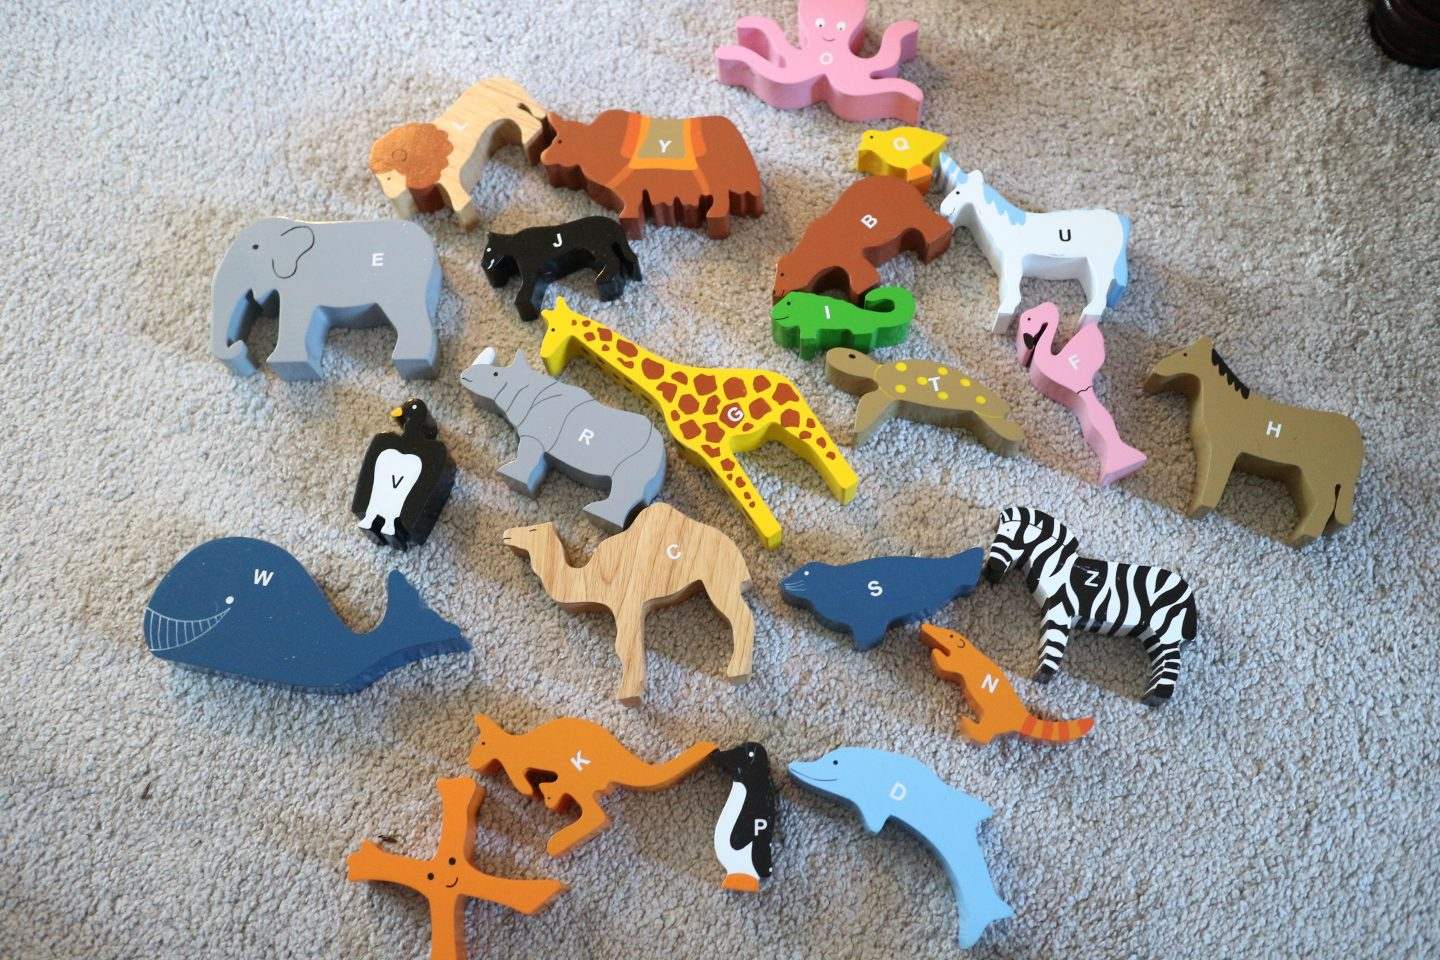 Sri Educational Wooden Toys Review Somewhere After The Rainbow